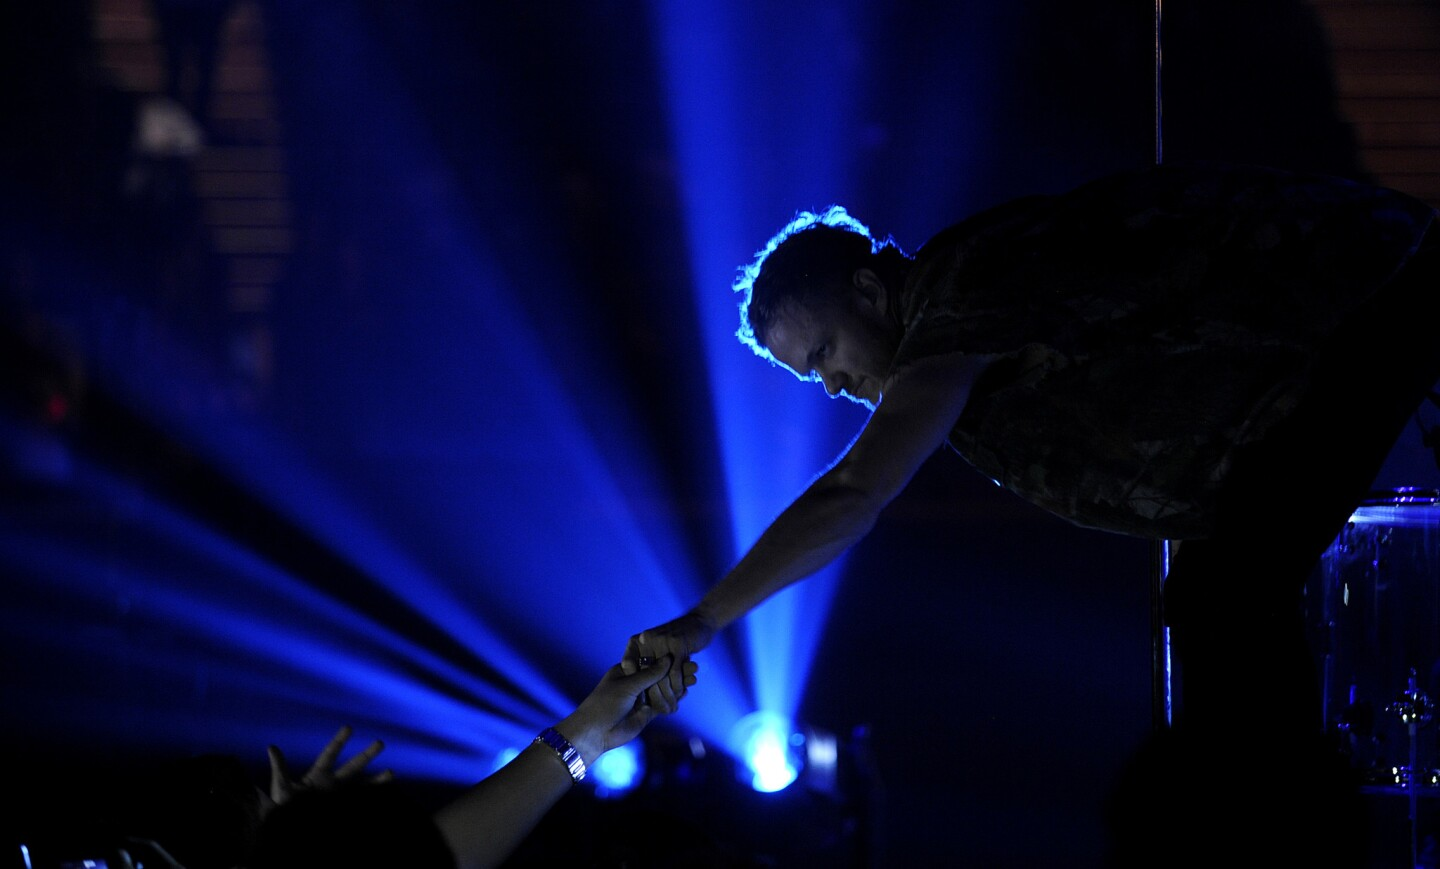 Concert photos by The Times | Imagine Dragons